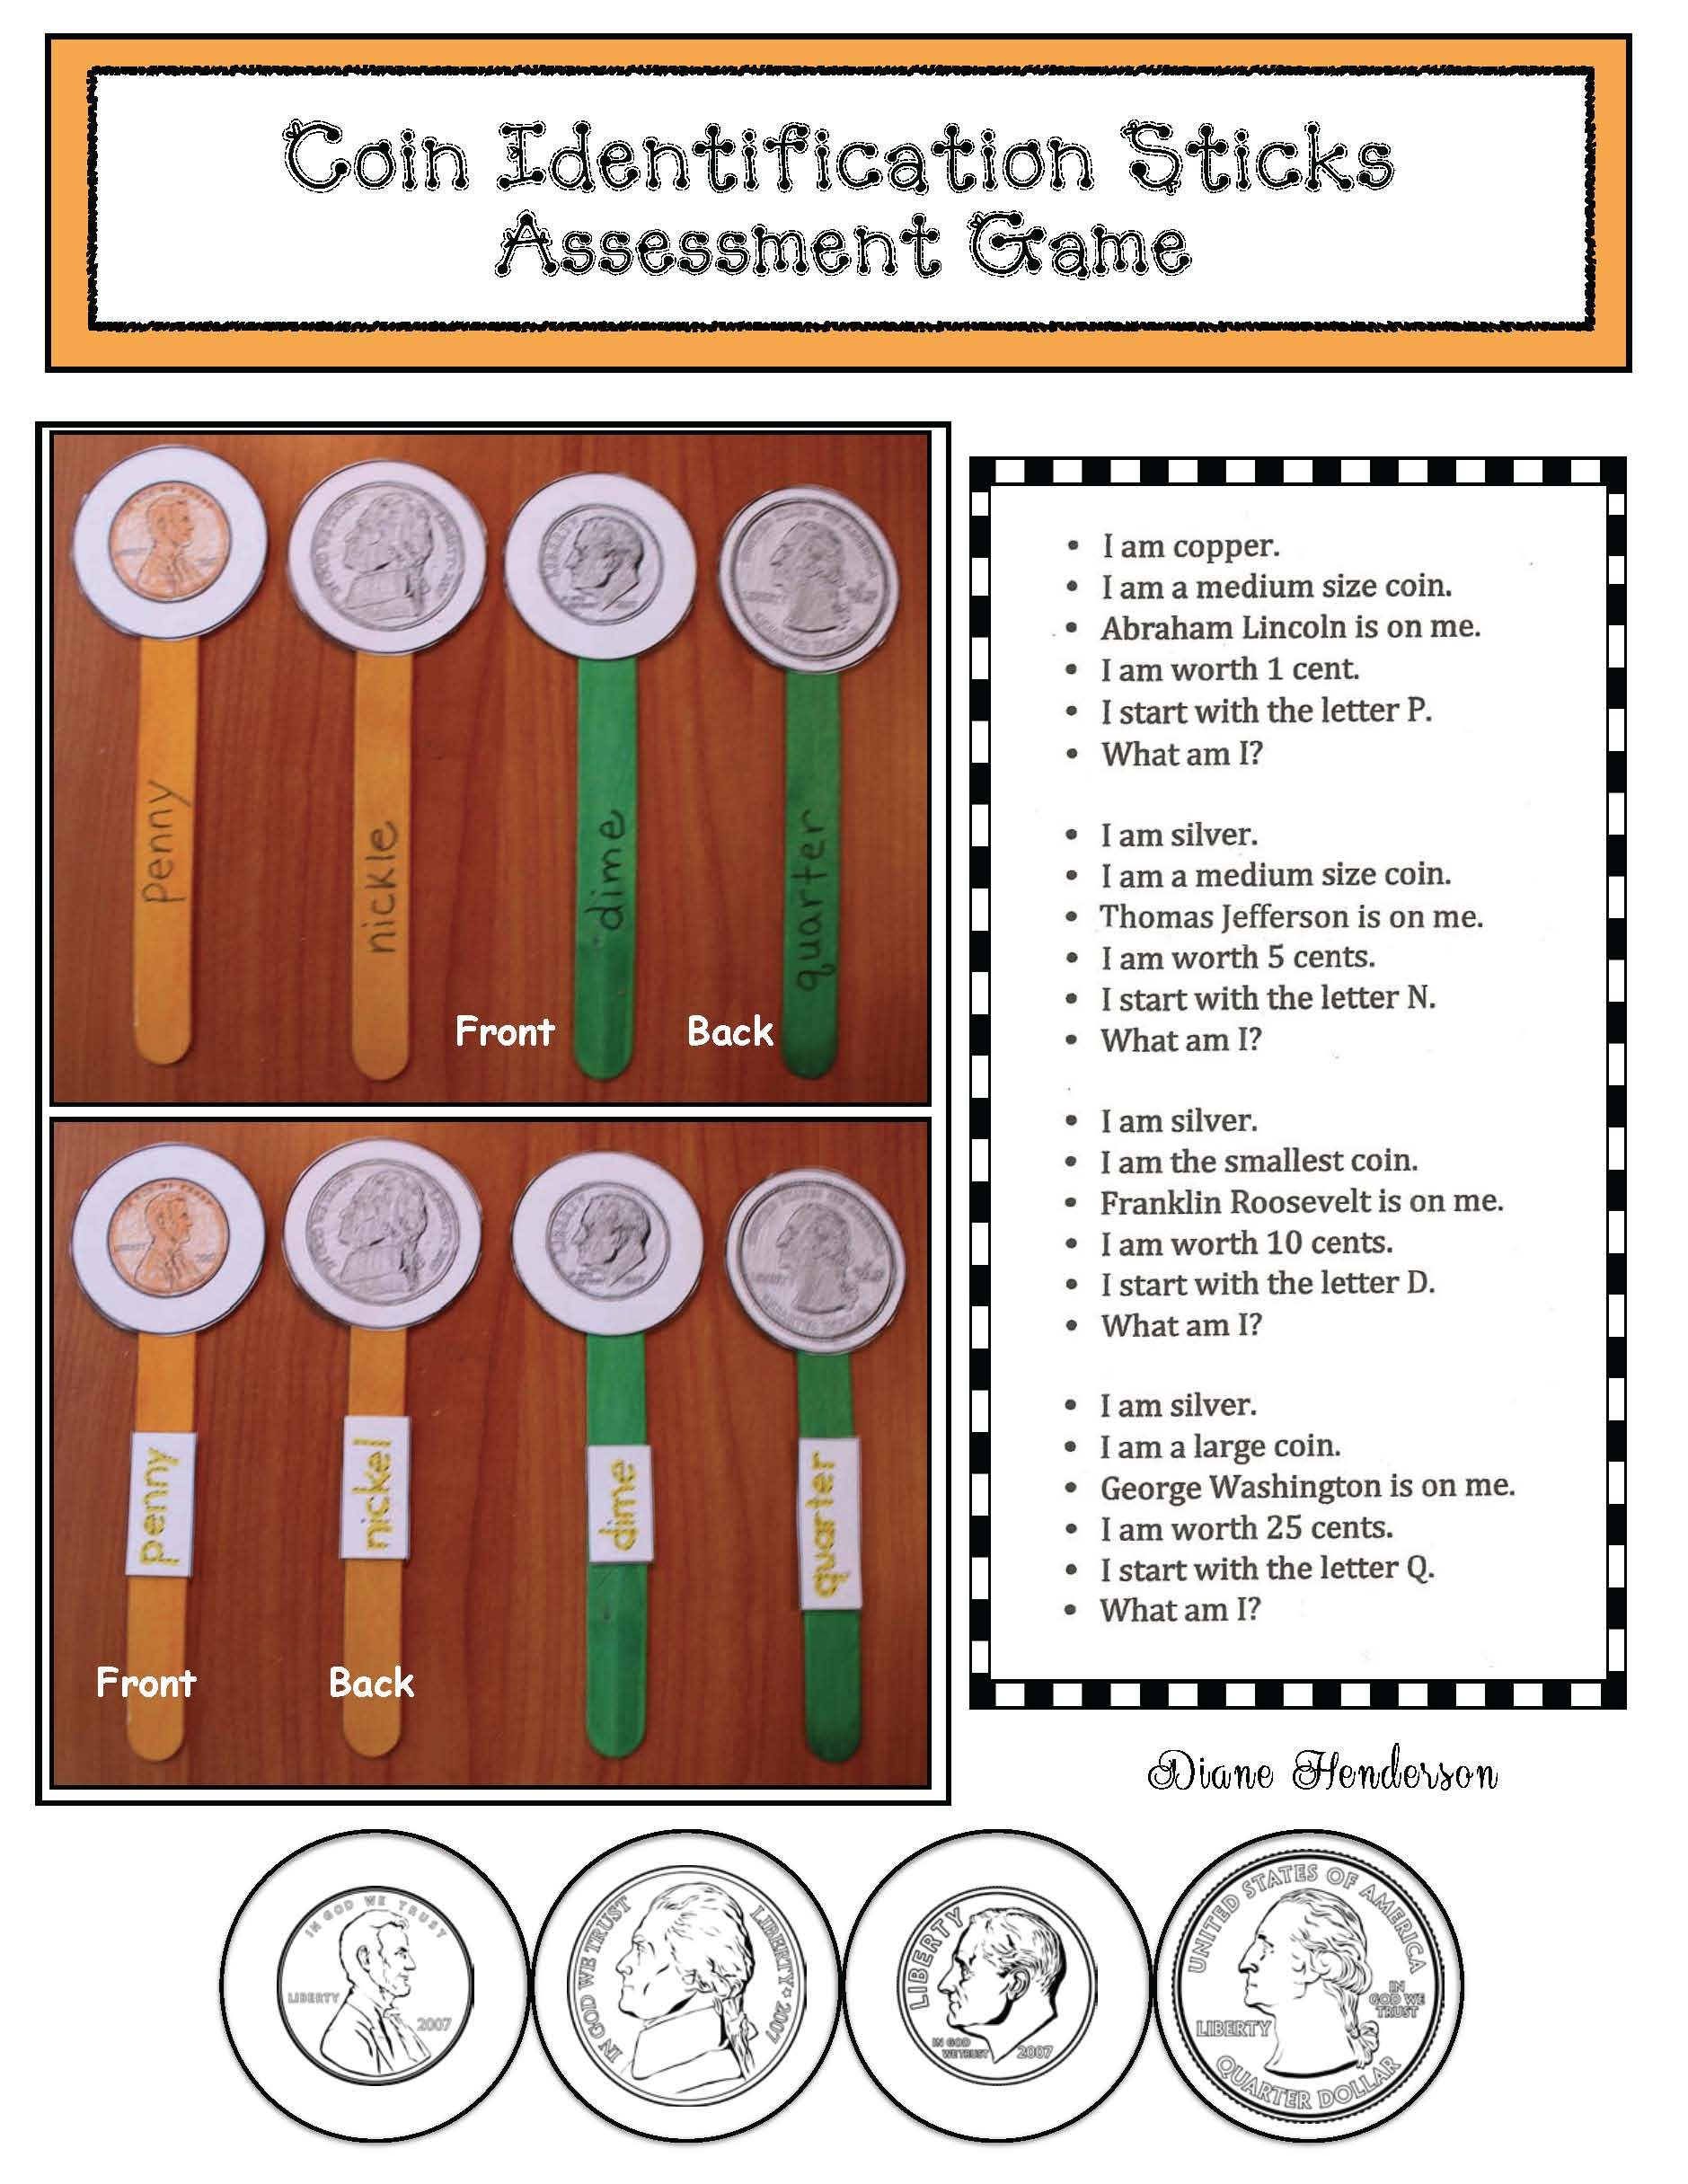 presidents day activities, presidents day crafts, presidents day games, coin games, coin activities, coin crafts, coin assessments, coin centers, identifying coins